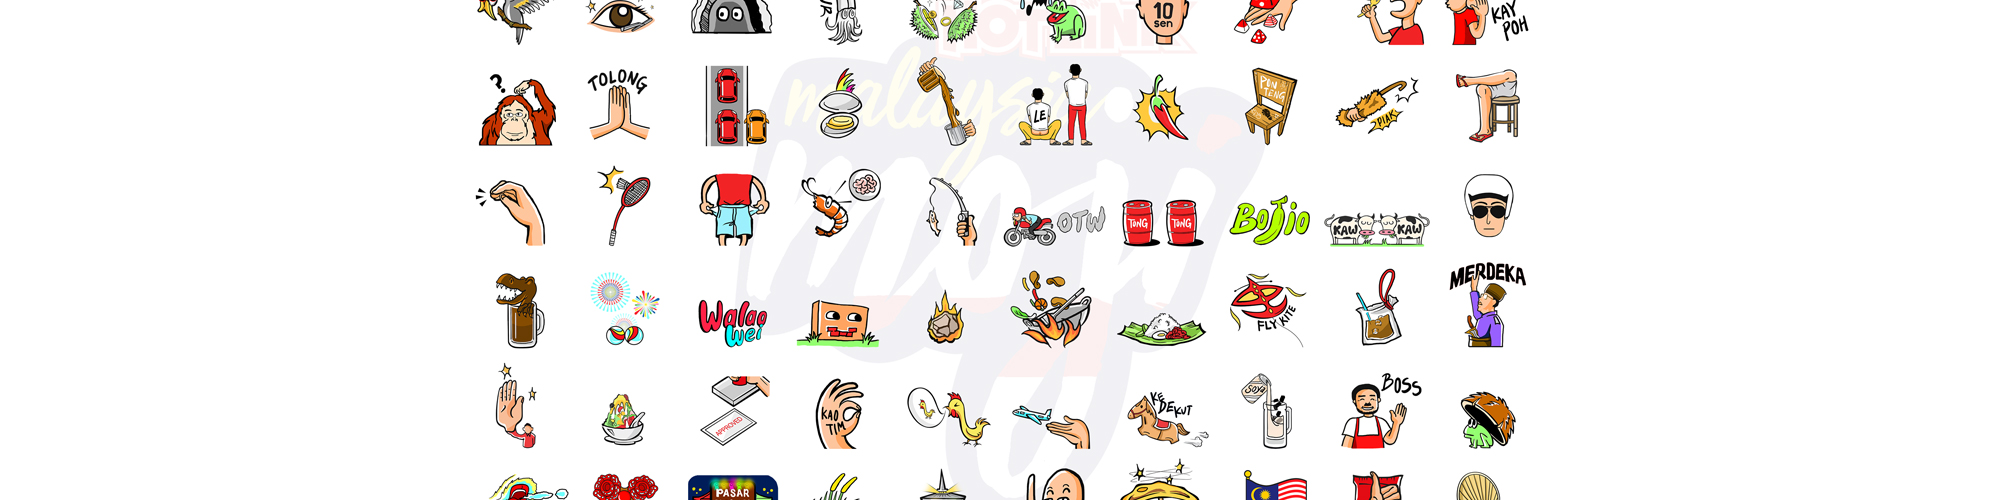 60 Malaysia-themed GIFs - the first in the world with Hotlink Malaysiamoji!